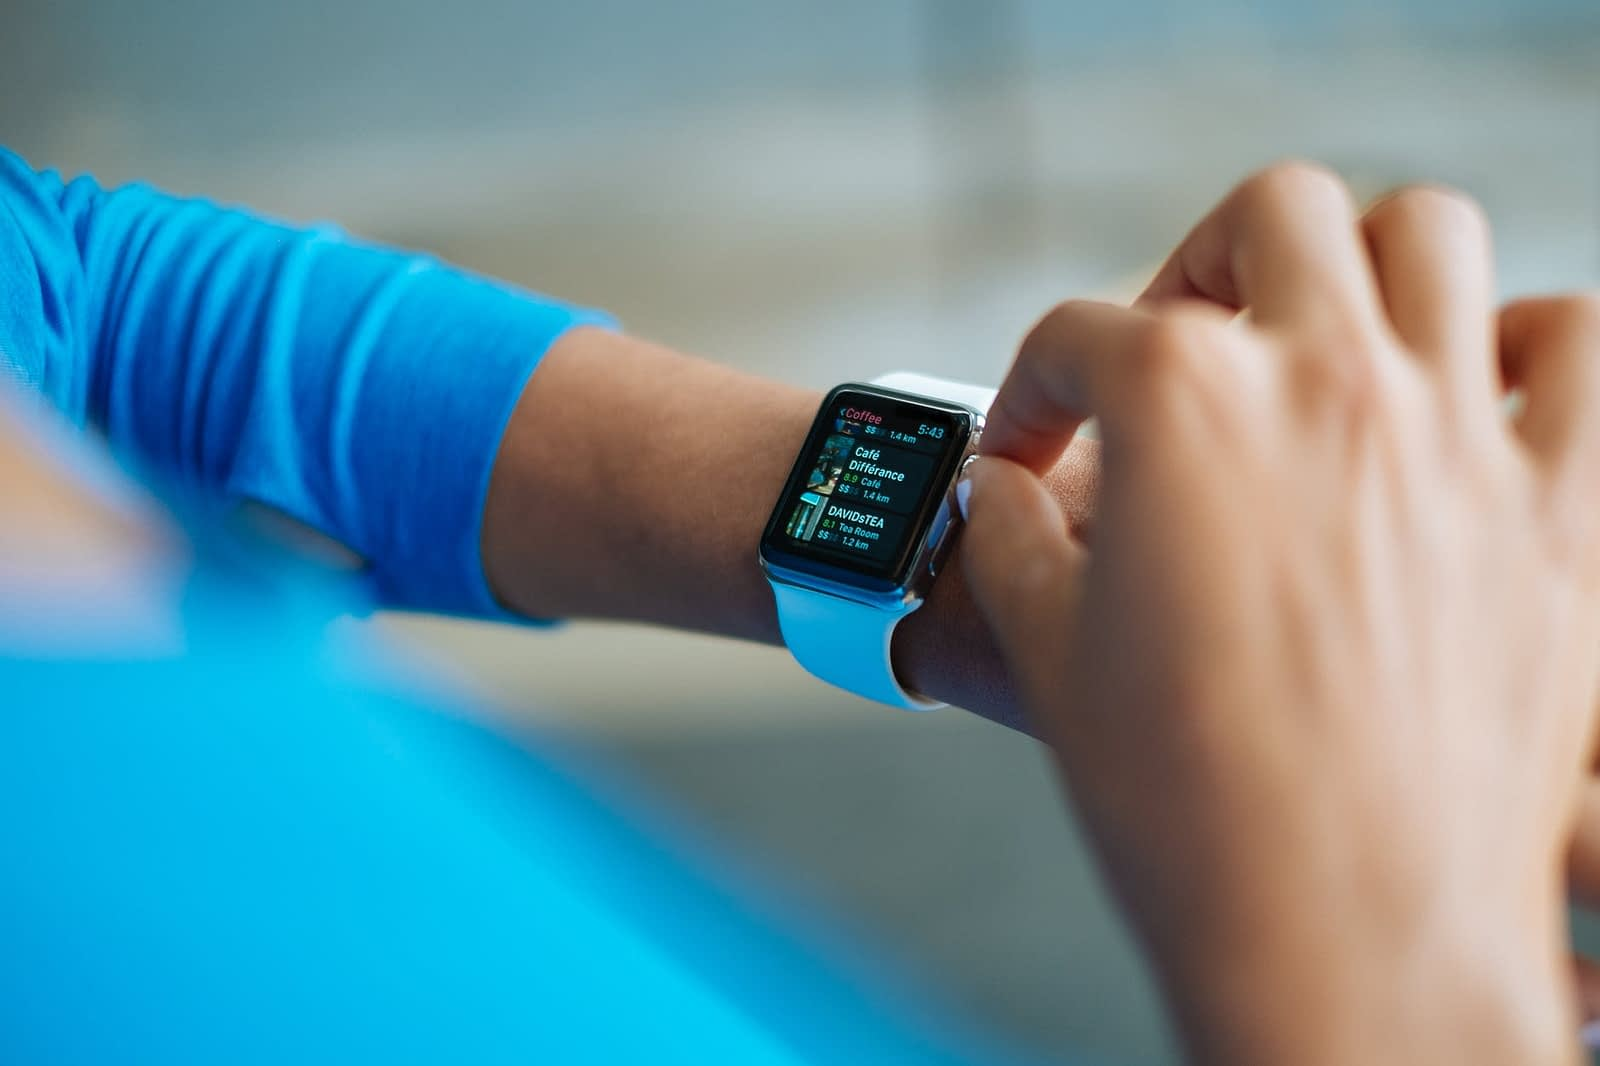 How Accurate is the Data from Wearable Technologies?